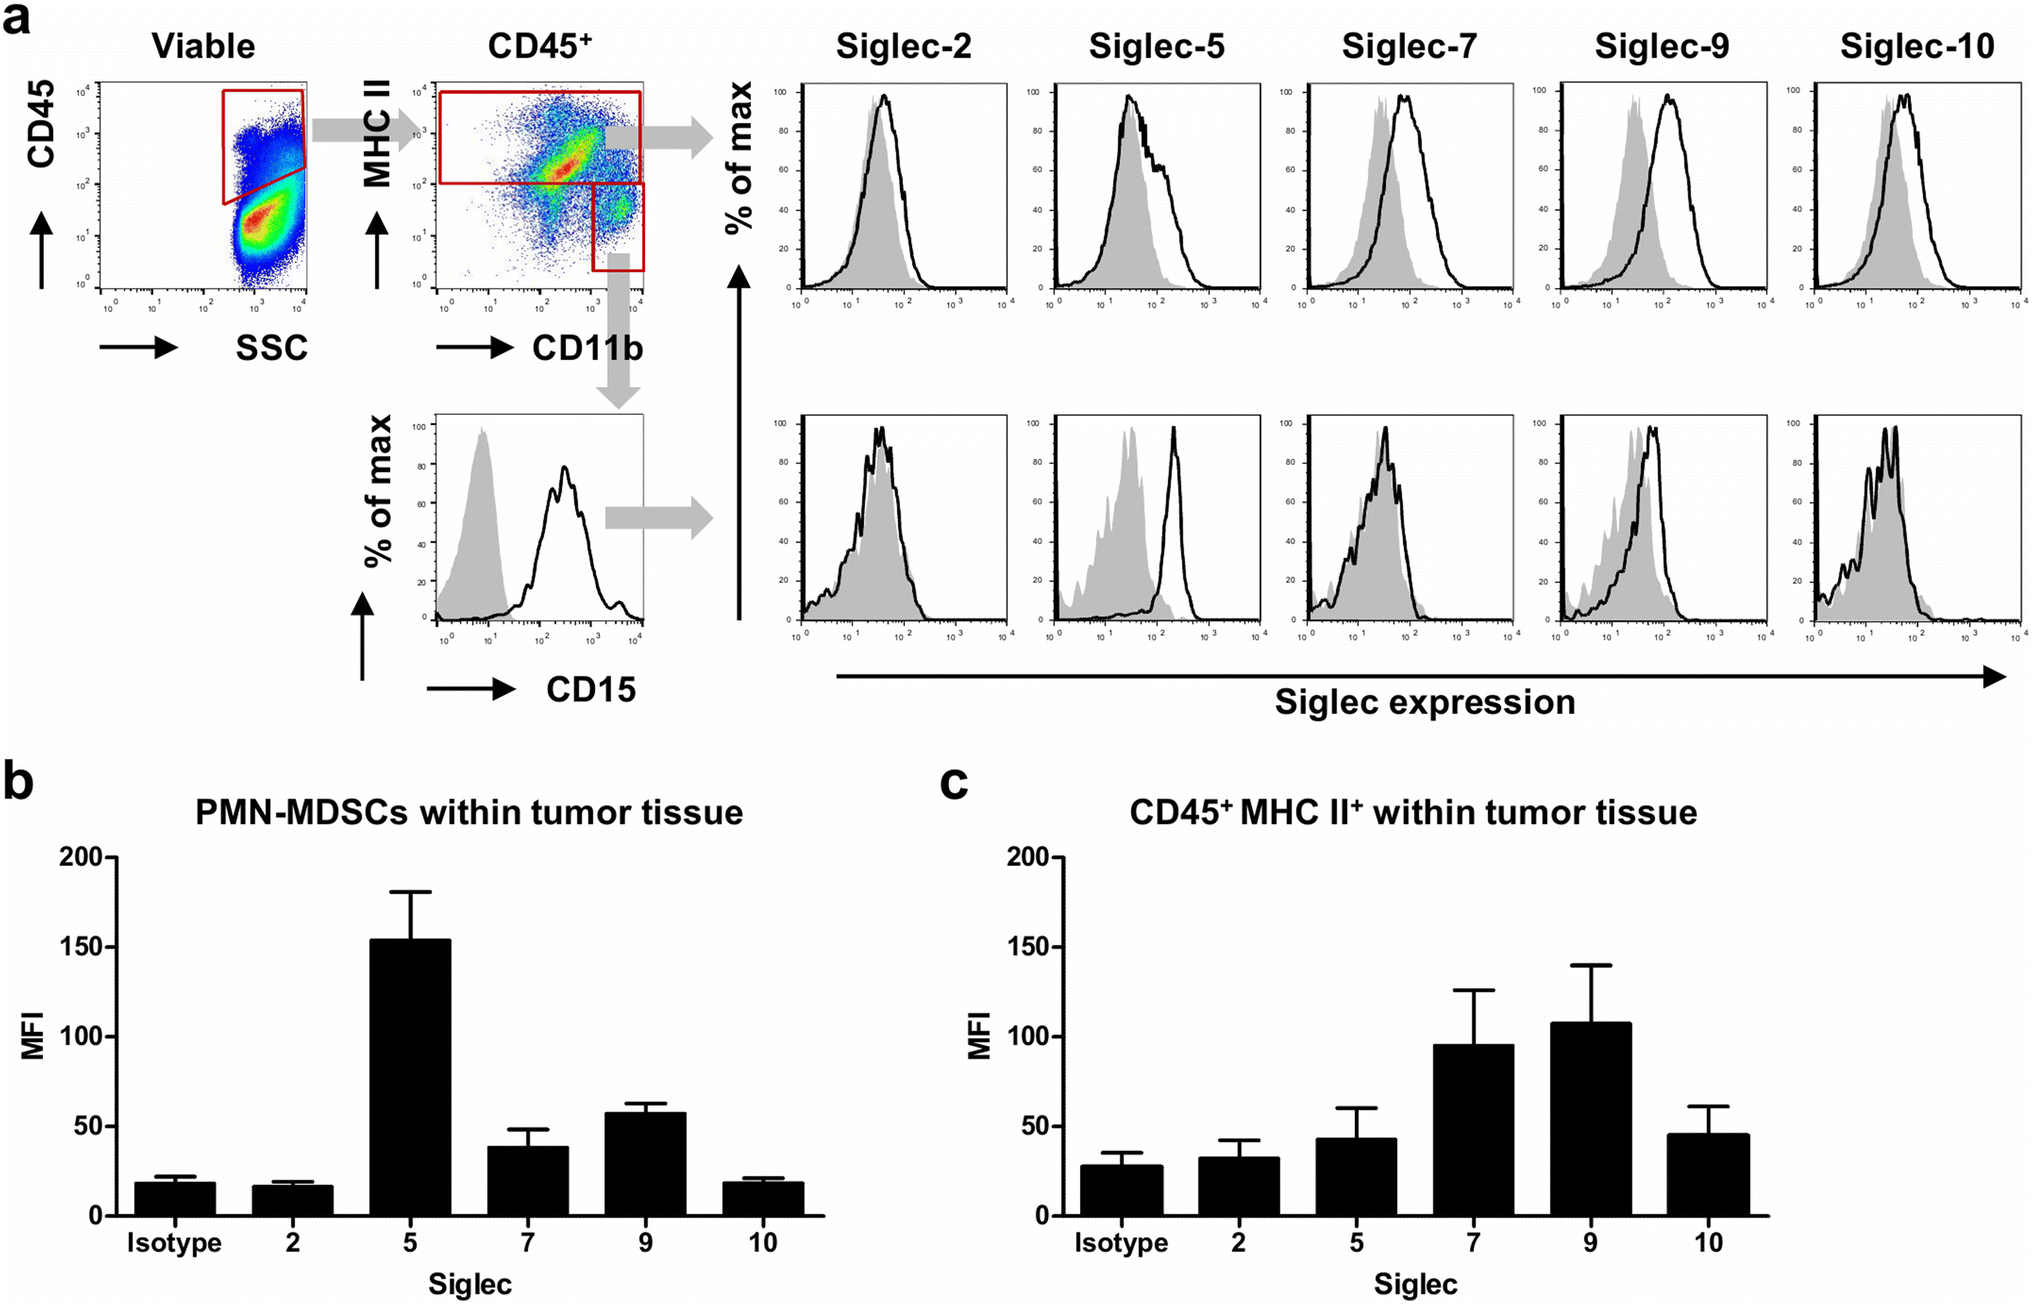 Expression profiling of immune inhibitory Siglecs and their